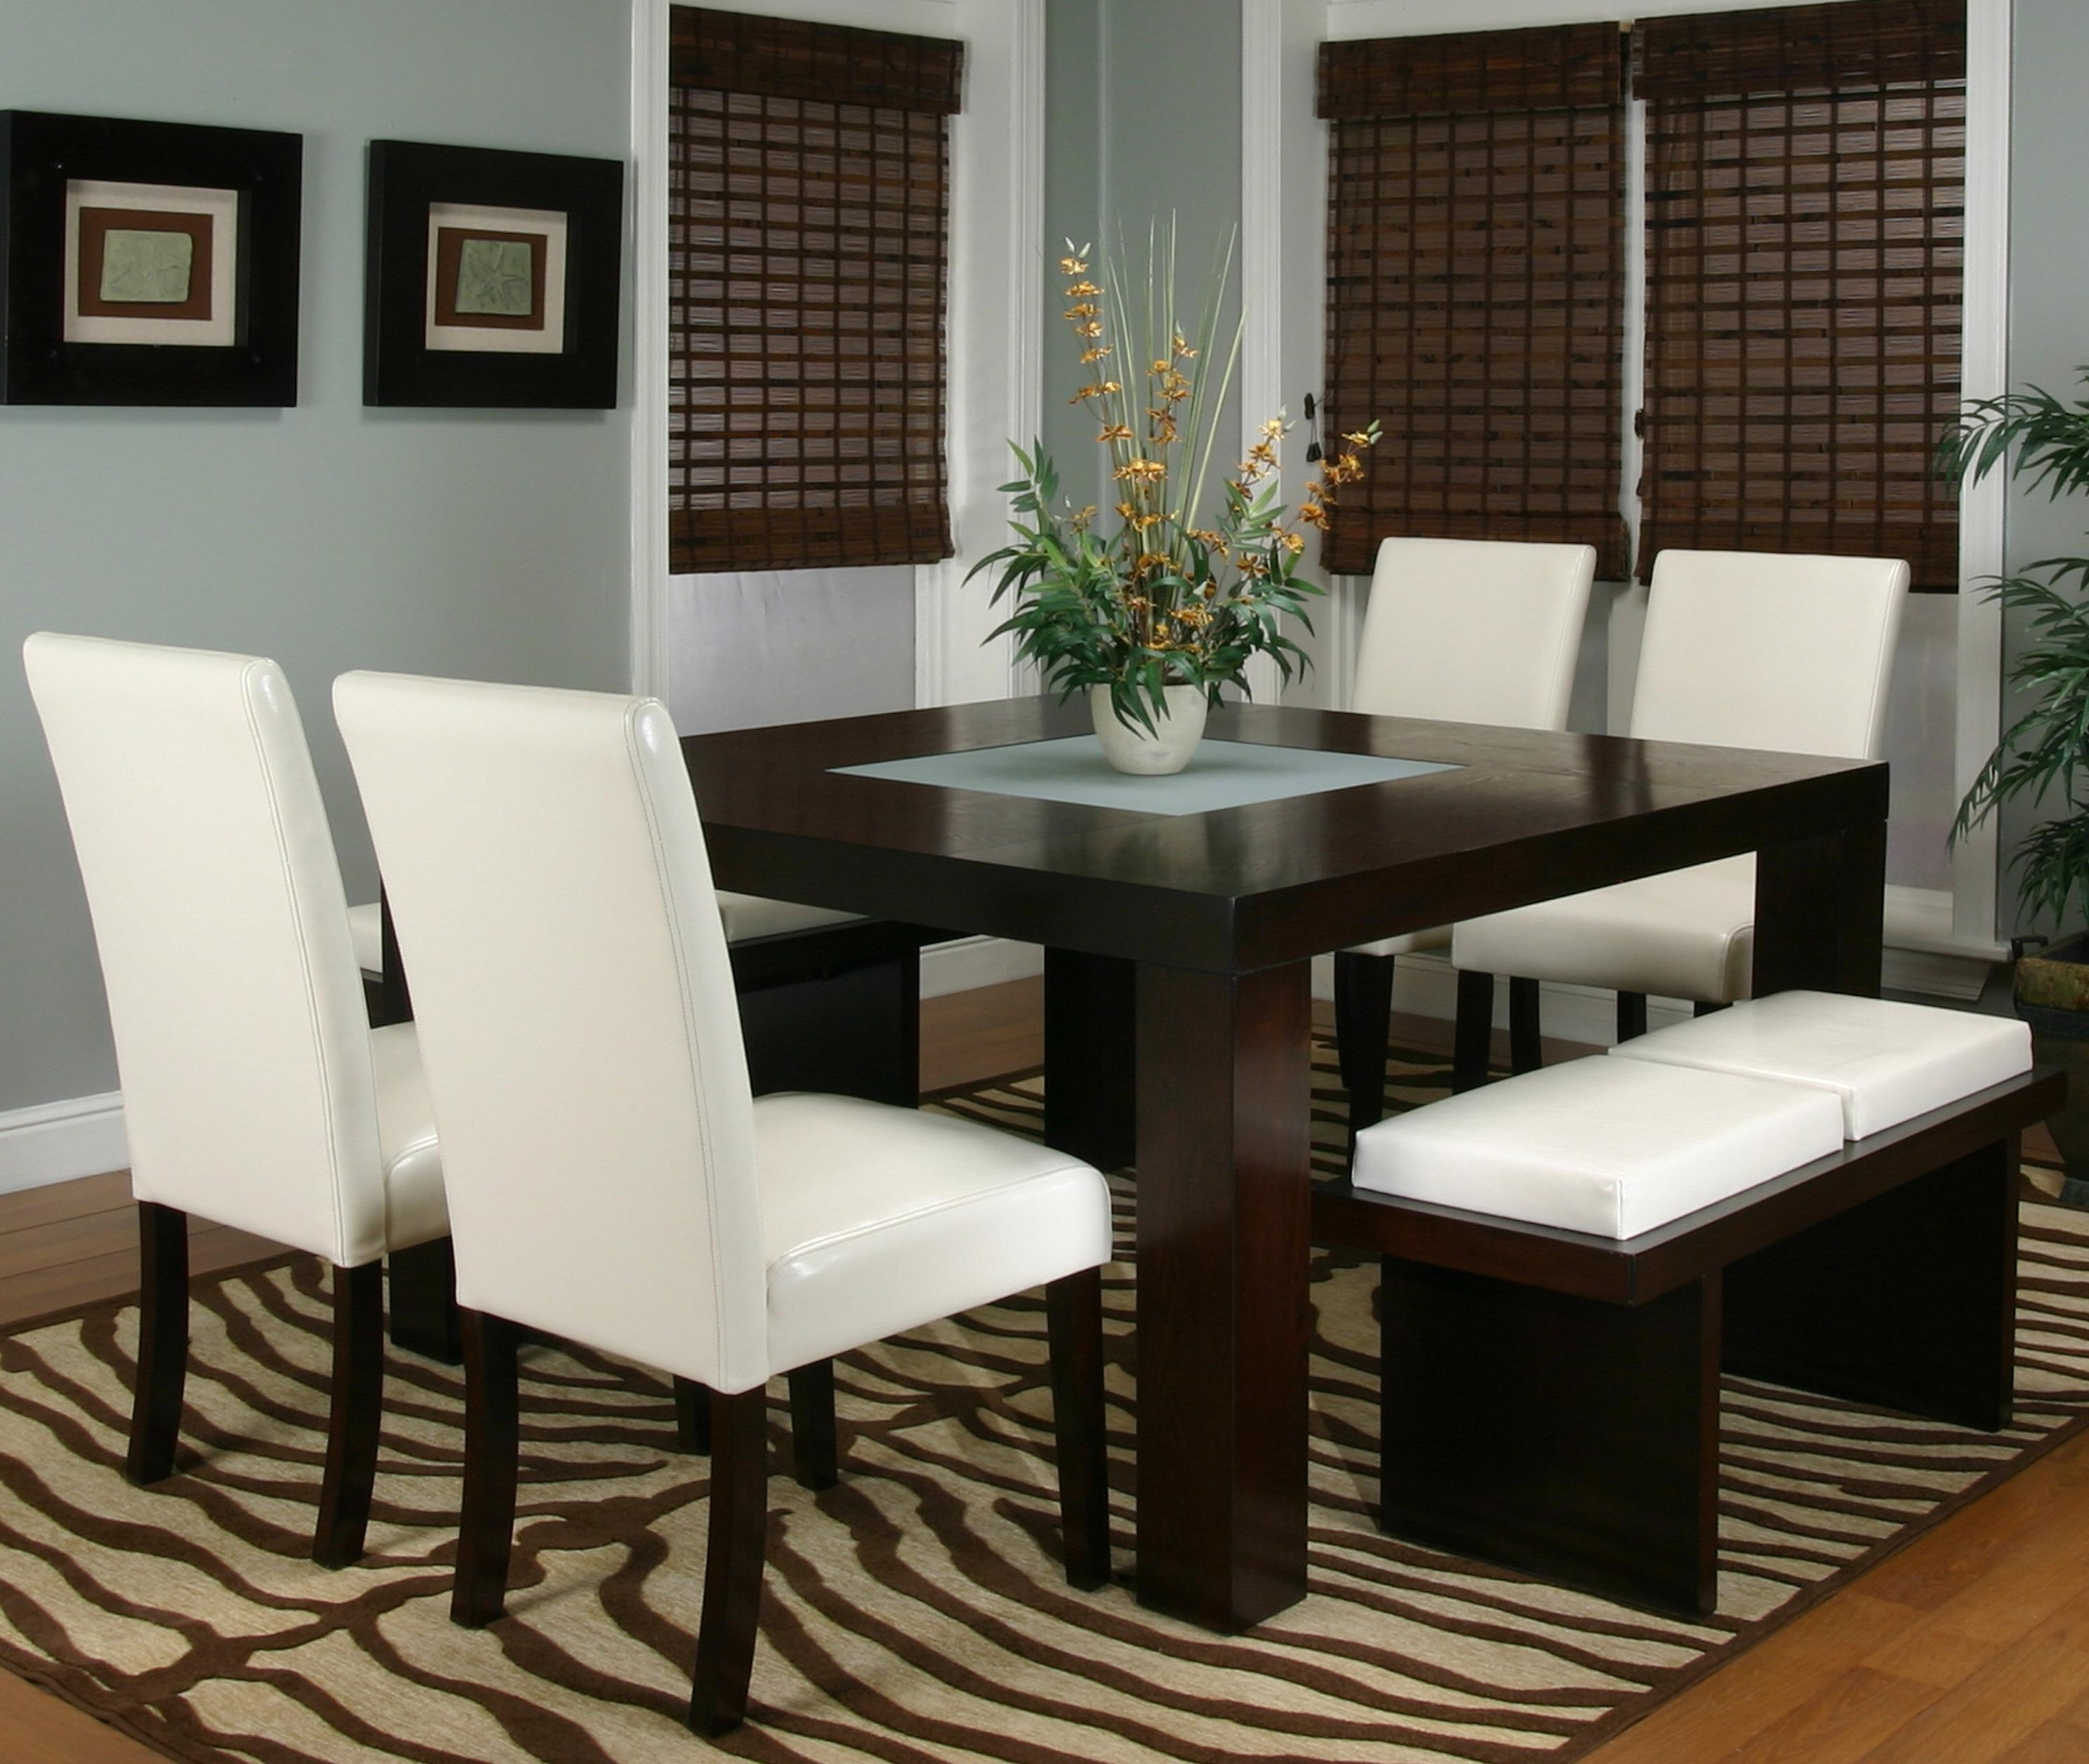 Smoked Glass Dining Tables And Chairs Inside Most Up To Date Seven Piece Dining Setcramco, Inc (View 18 of 25)